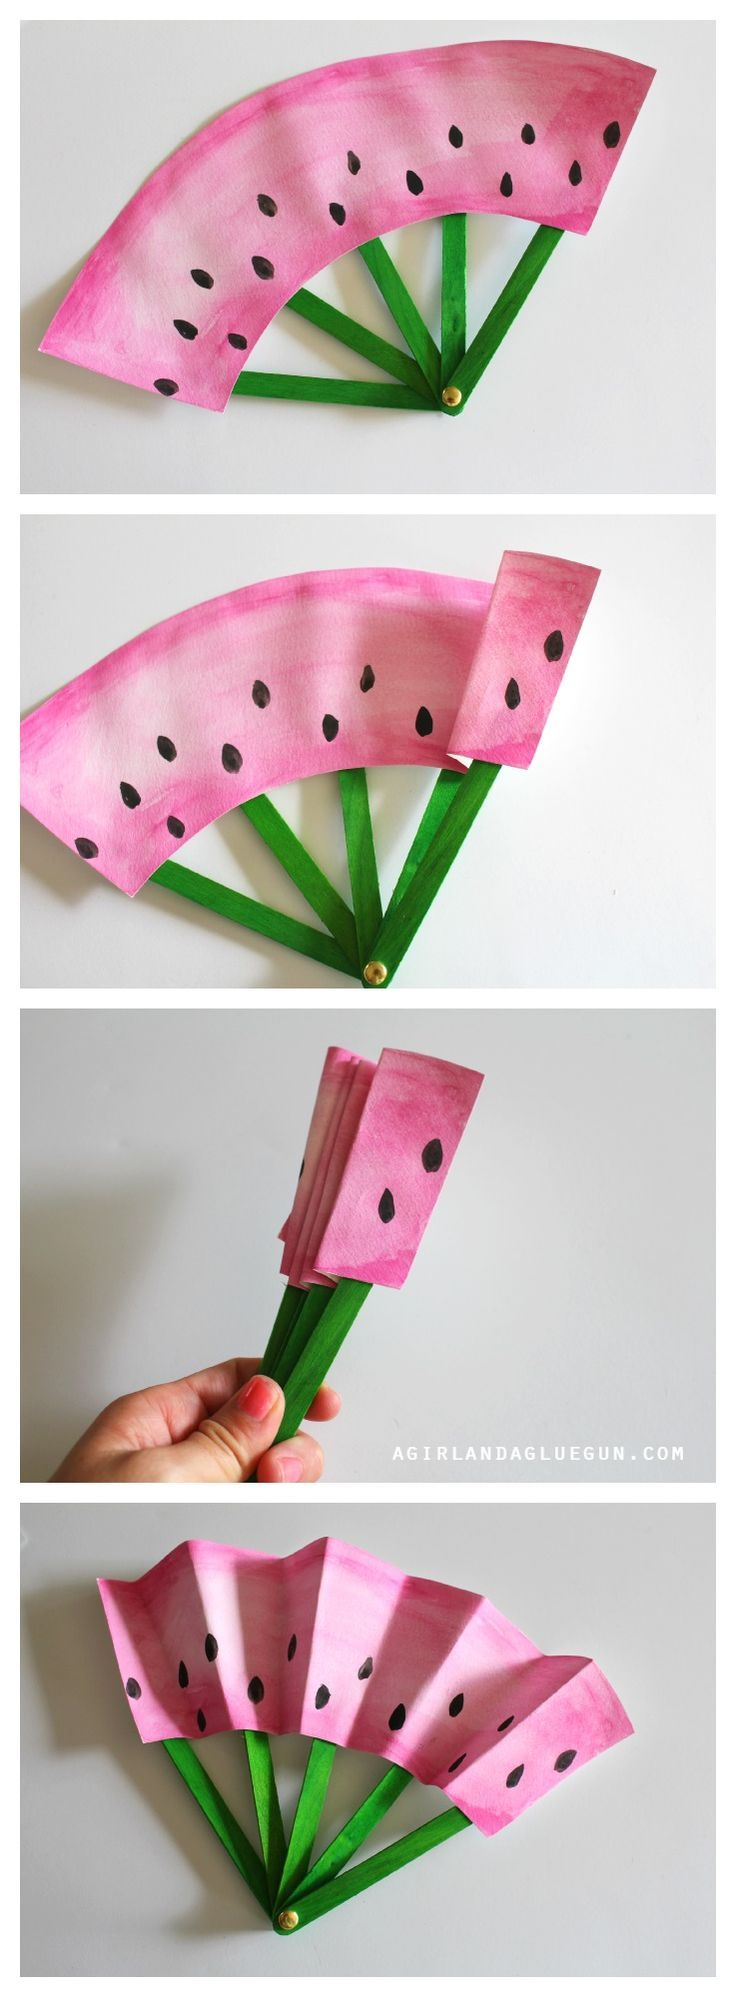 17 Best ideas about Arts And Crafts on Pinterest  Crafts for girls, Homemade room decorations